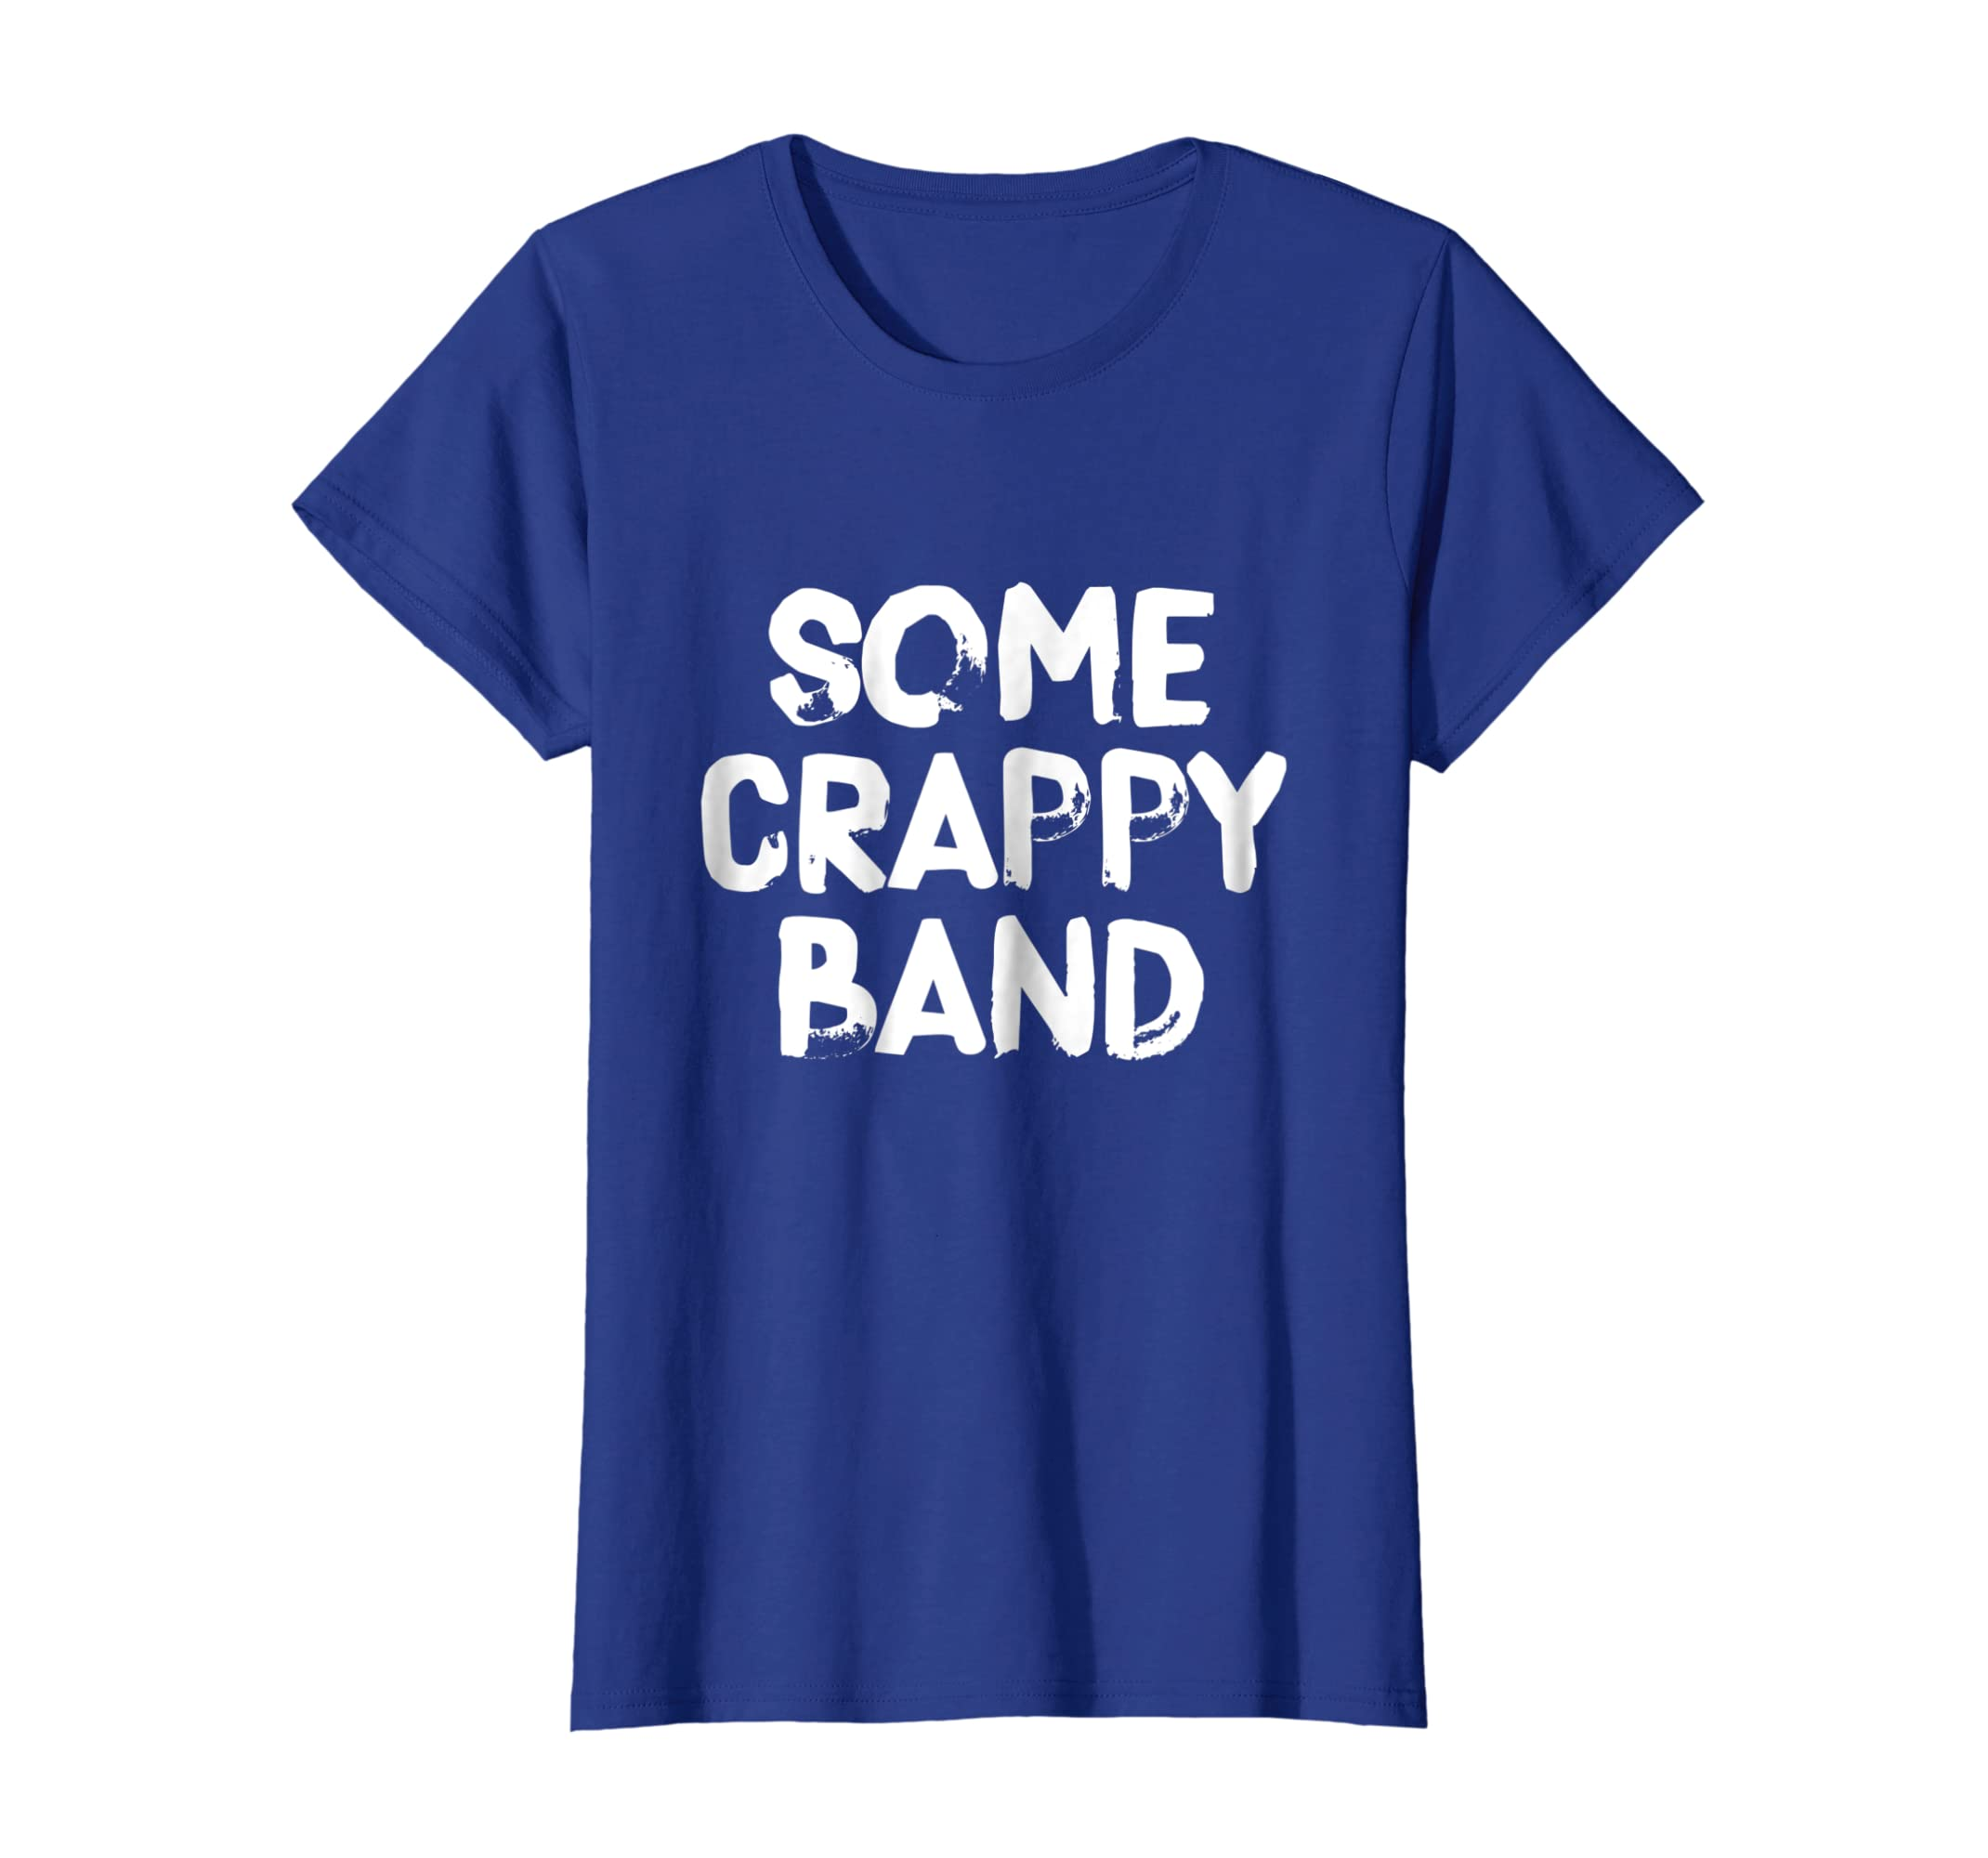 cc1a24ee35382 Amazon.com  Some Crappy Band Funny Concert T-Shirt  Clothing